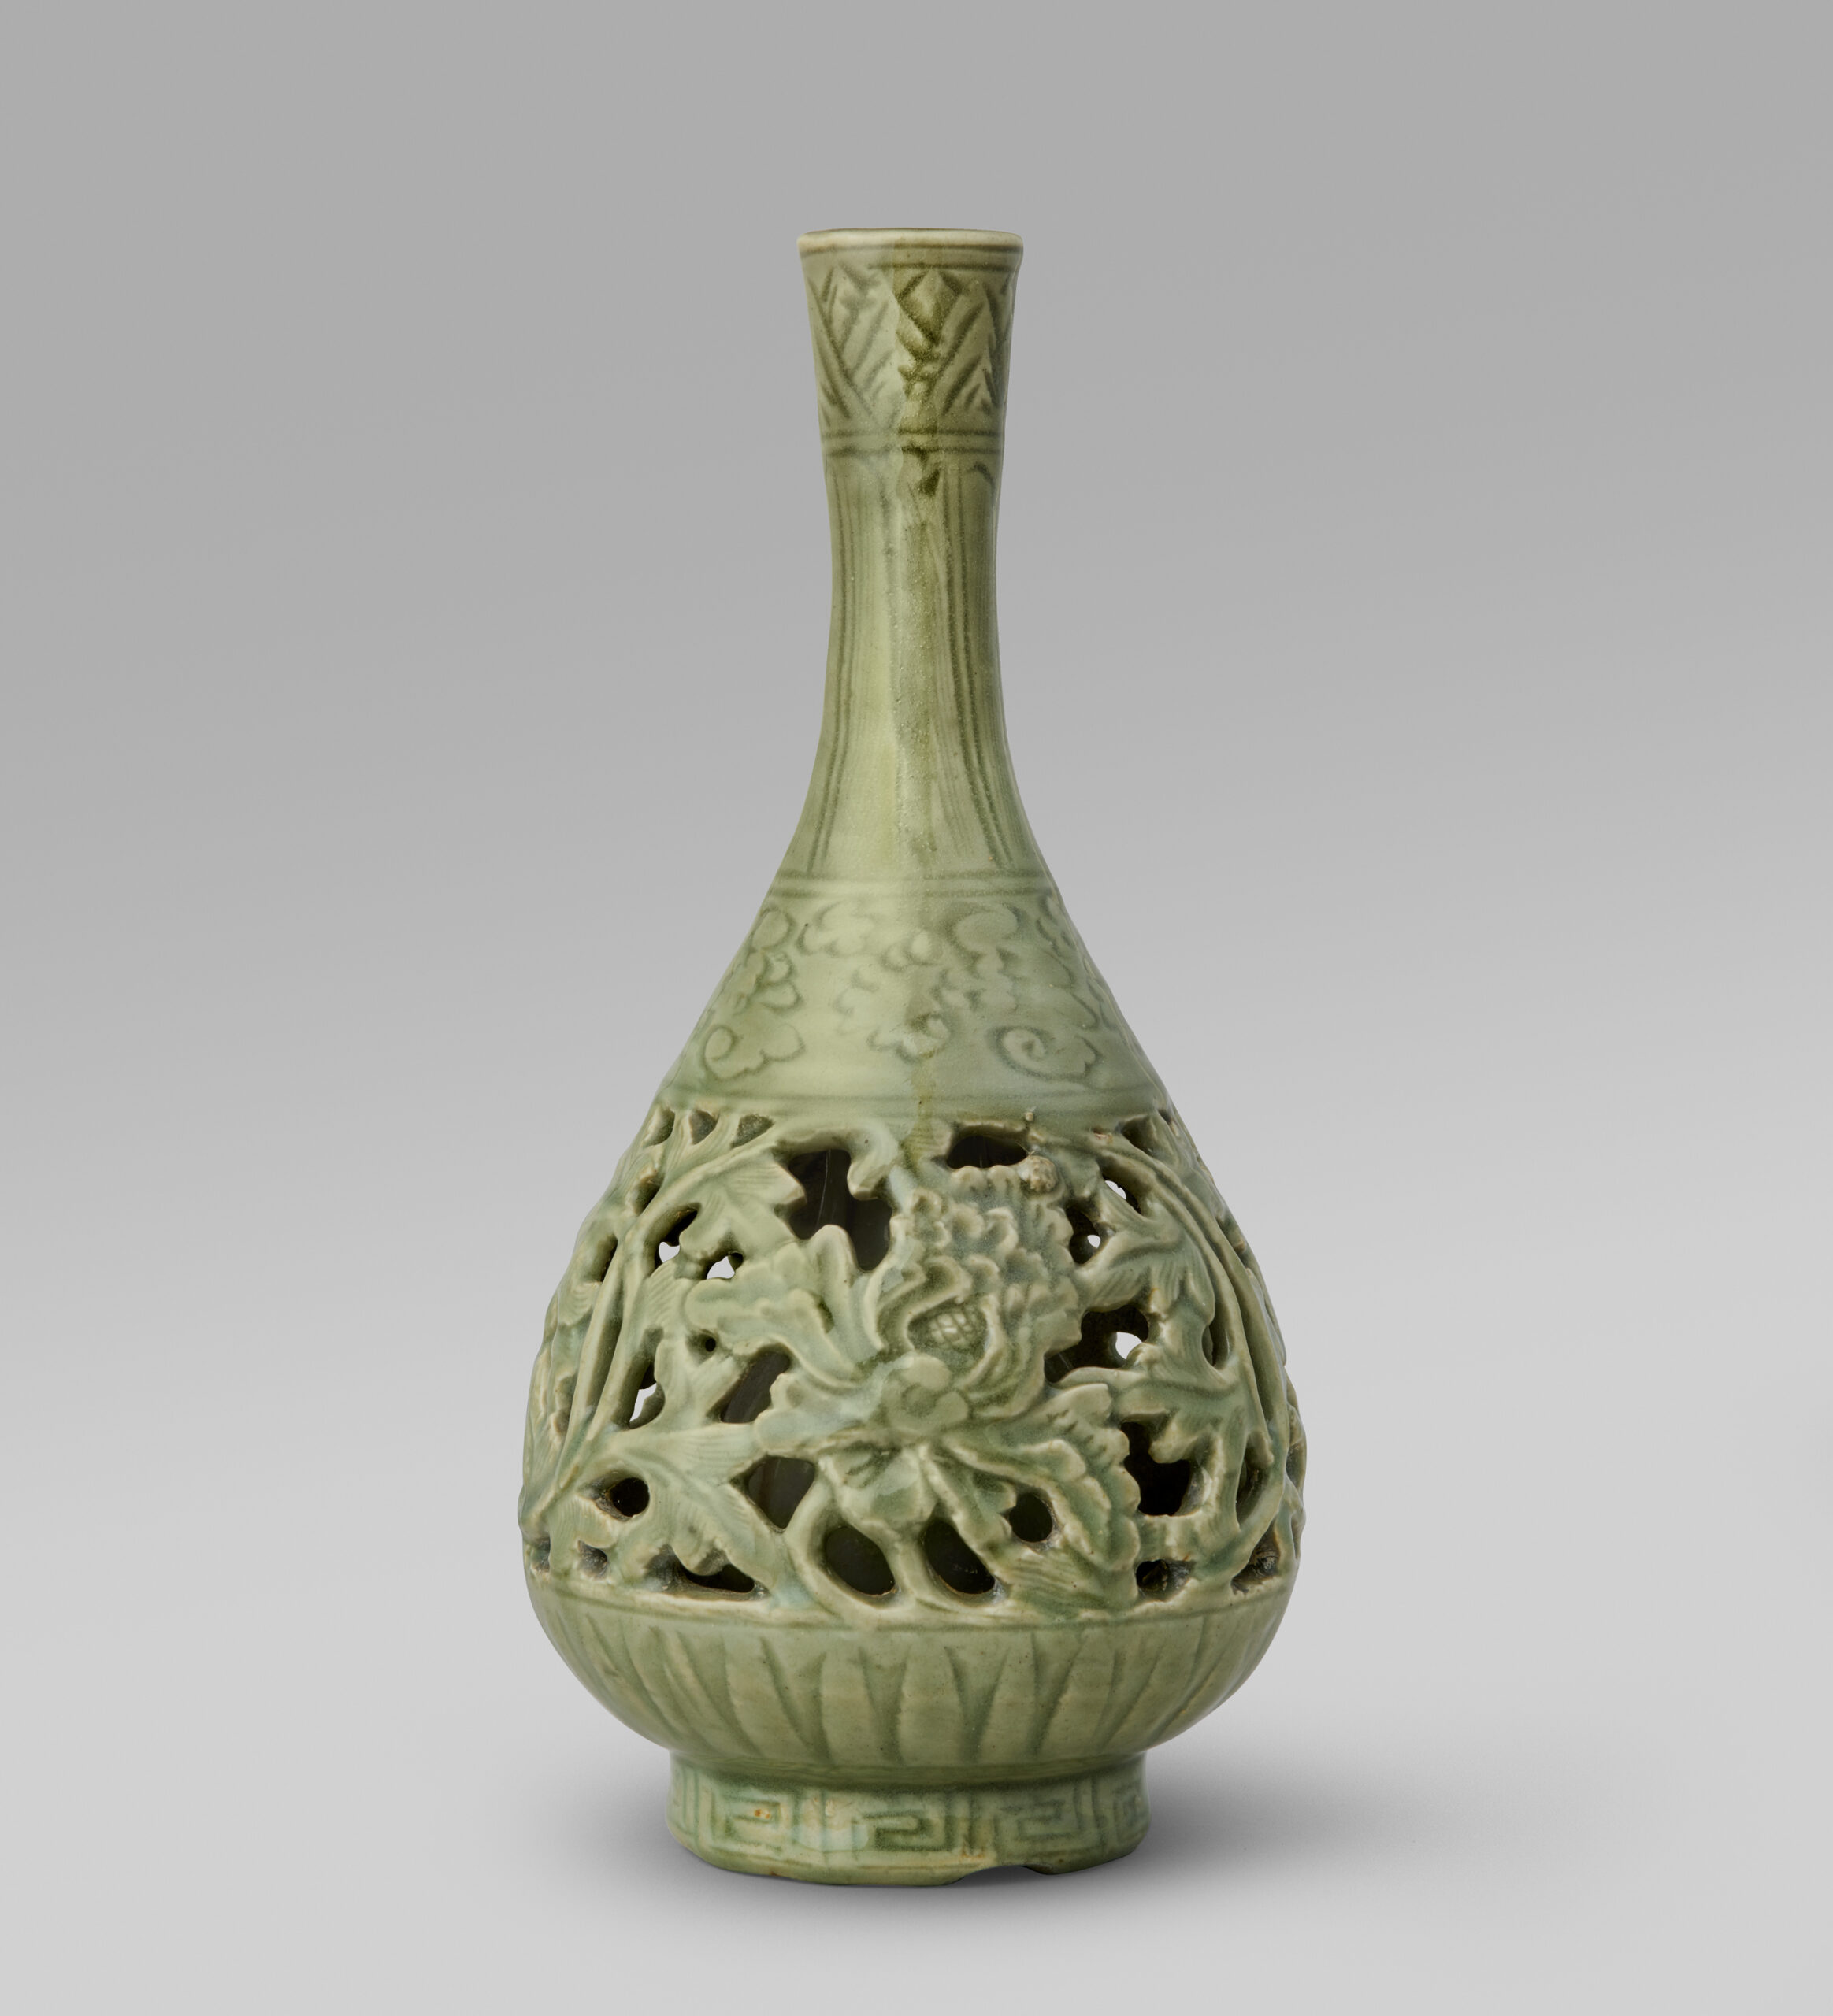 A rare reticulated Longquan celadon pear-shaped vase 'Yuhuchunping', with incised decoration (Yuan dynasty, 1279-1368)